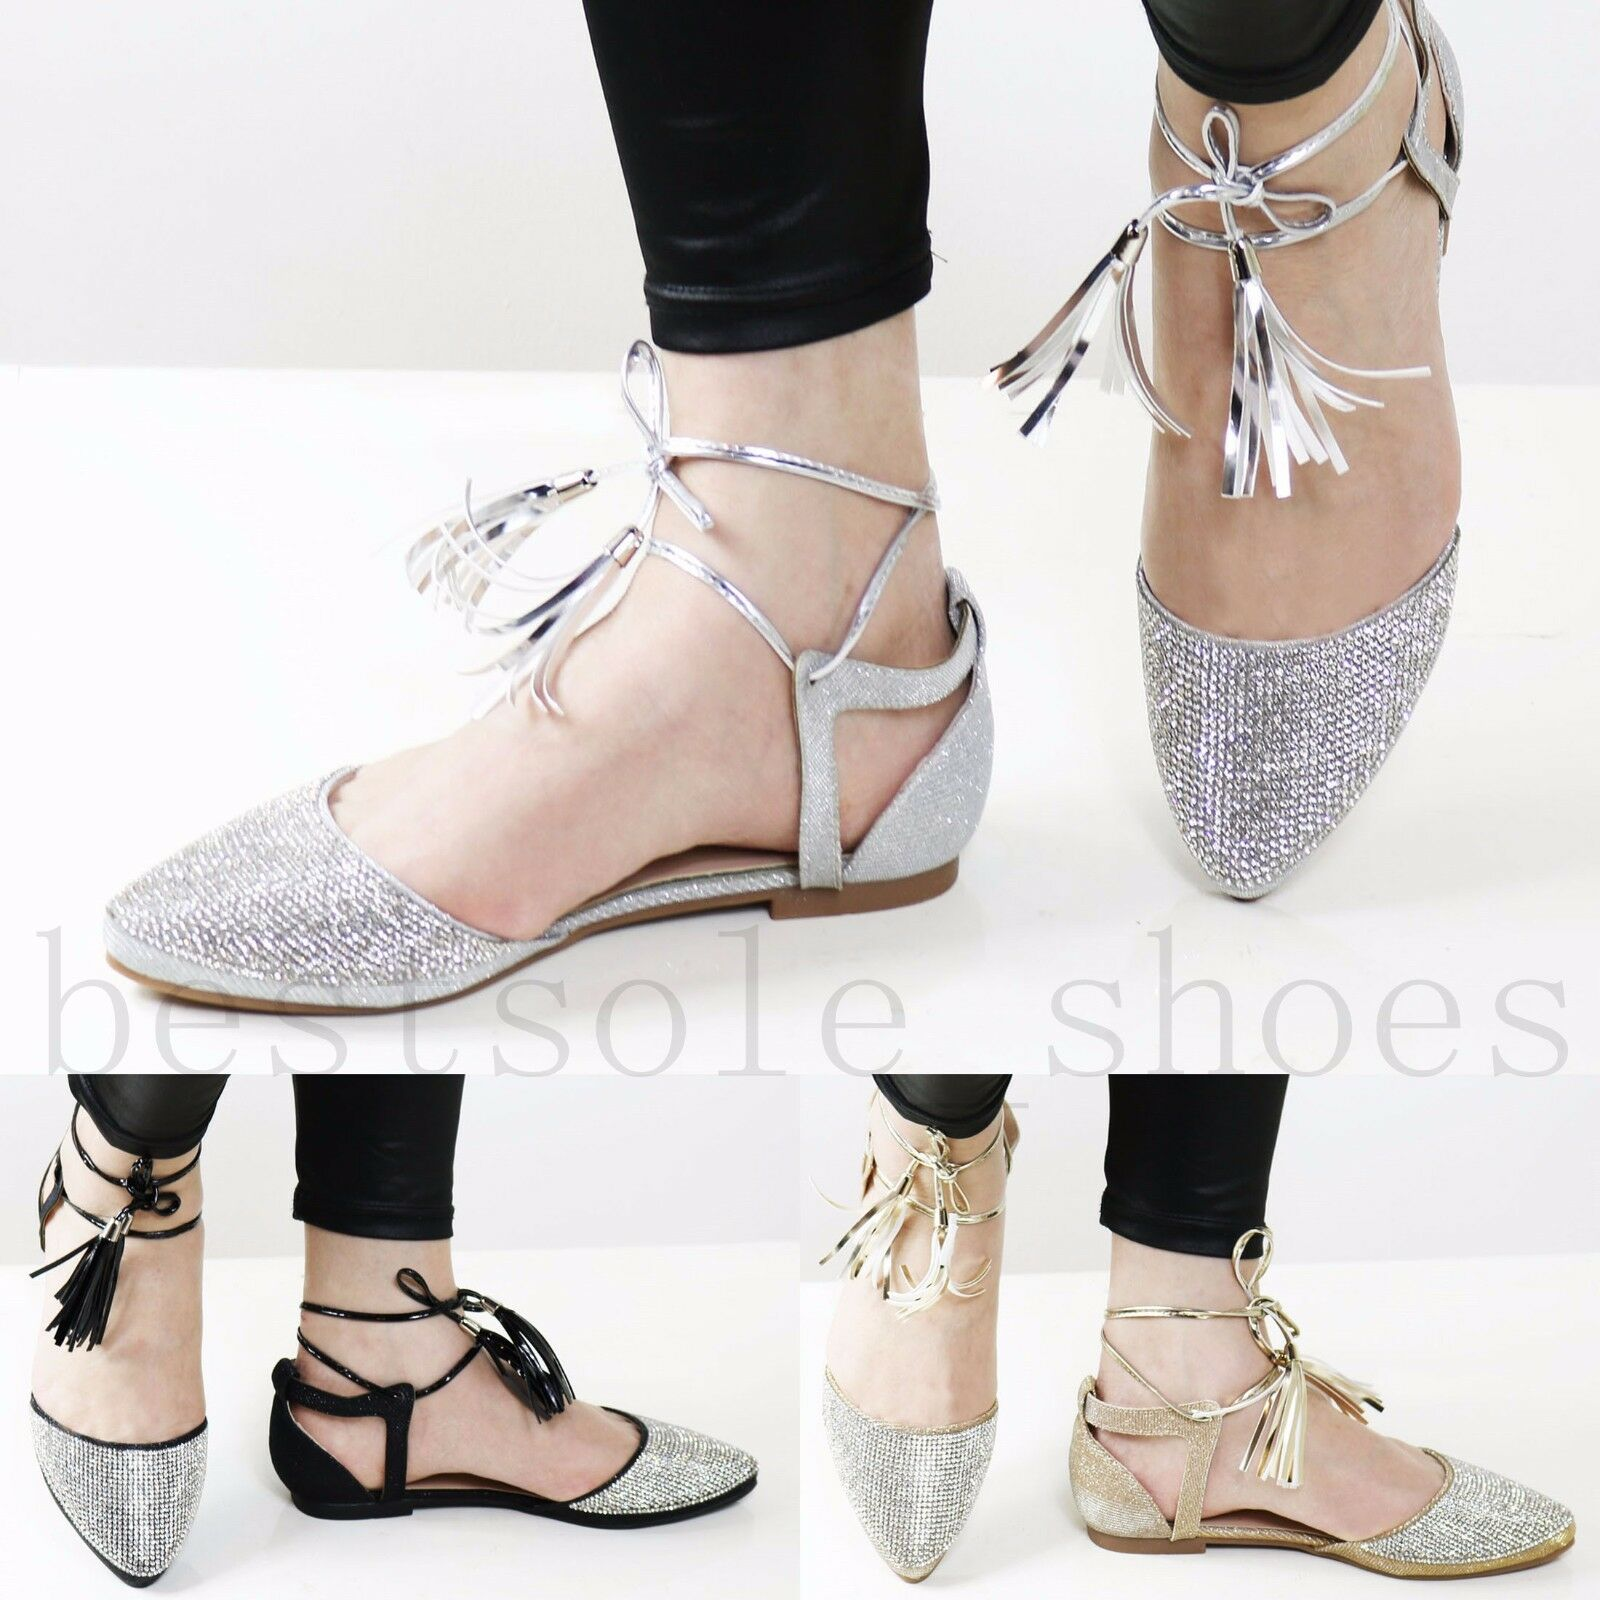 LADIES SUMMER WOMENS DIAMANTE ANKLE STRAP SANDALS FLAT SUMMER LADIES DRESSY BEACH SHOES SIZE f2a7a8